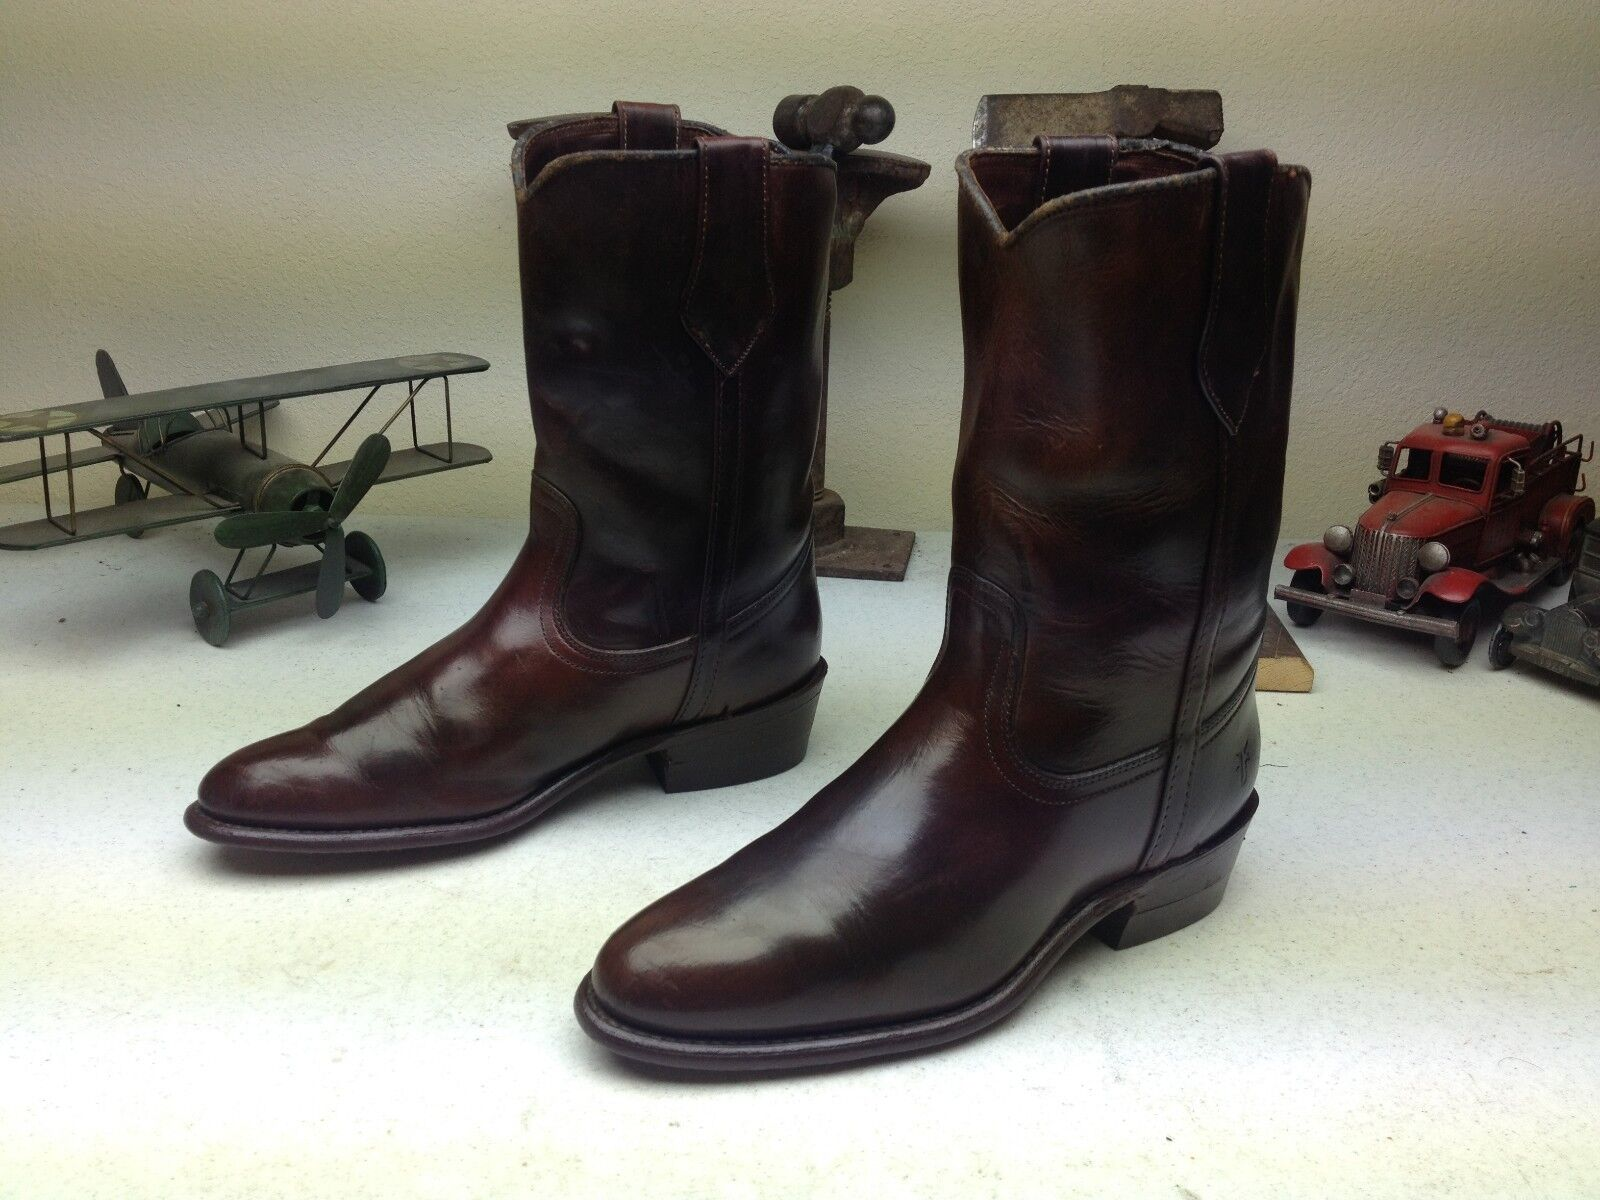 prezzi all'ingrosso VINTAGE MADE MADE MADE IN USA FRYE Marrone LEATHER ENGINEER MOTORCYCLE stivali Dimensione 8.5 D  outlet in vendita